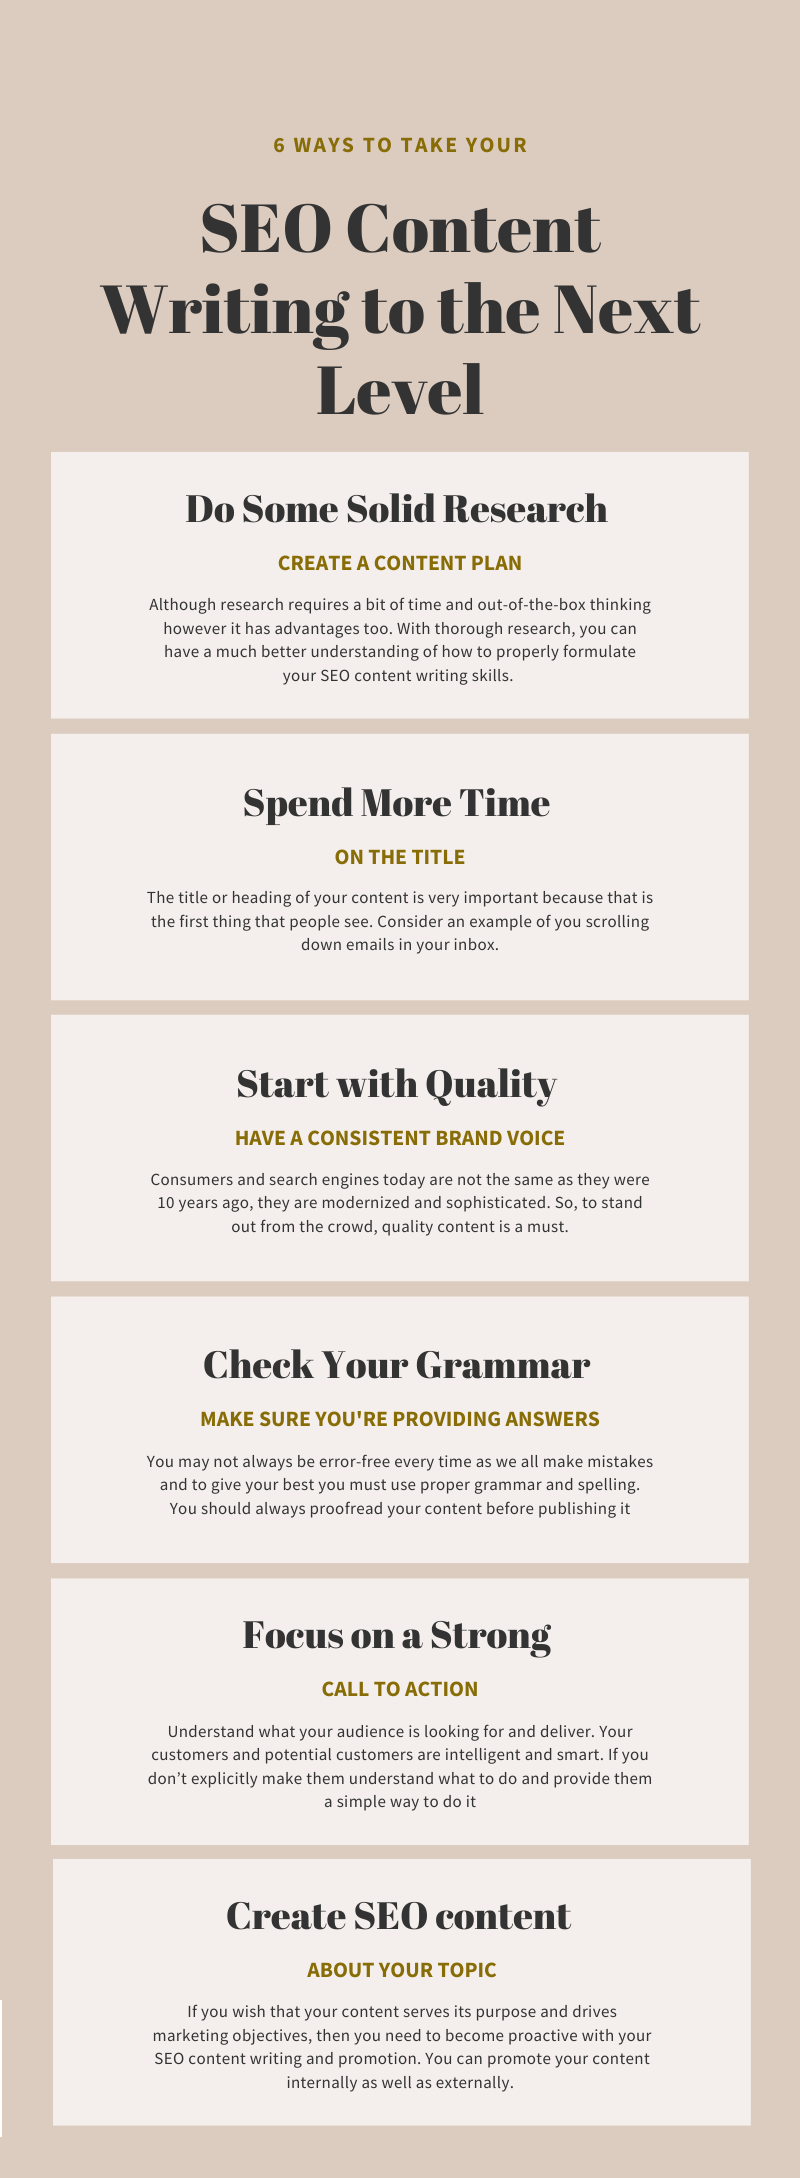 seo content writing infographic